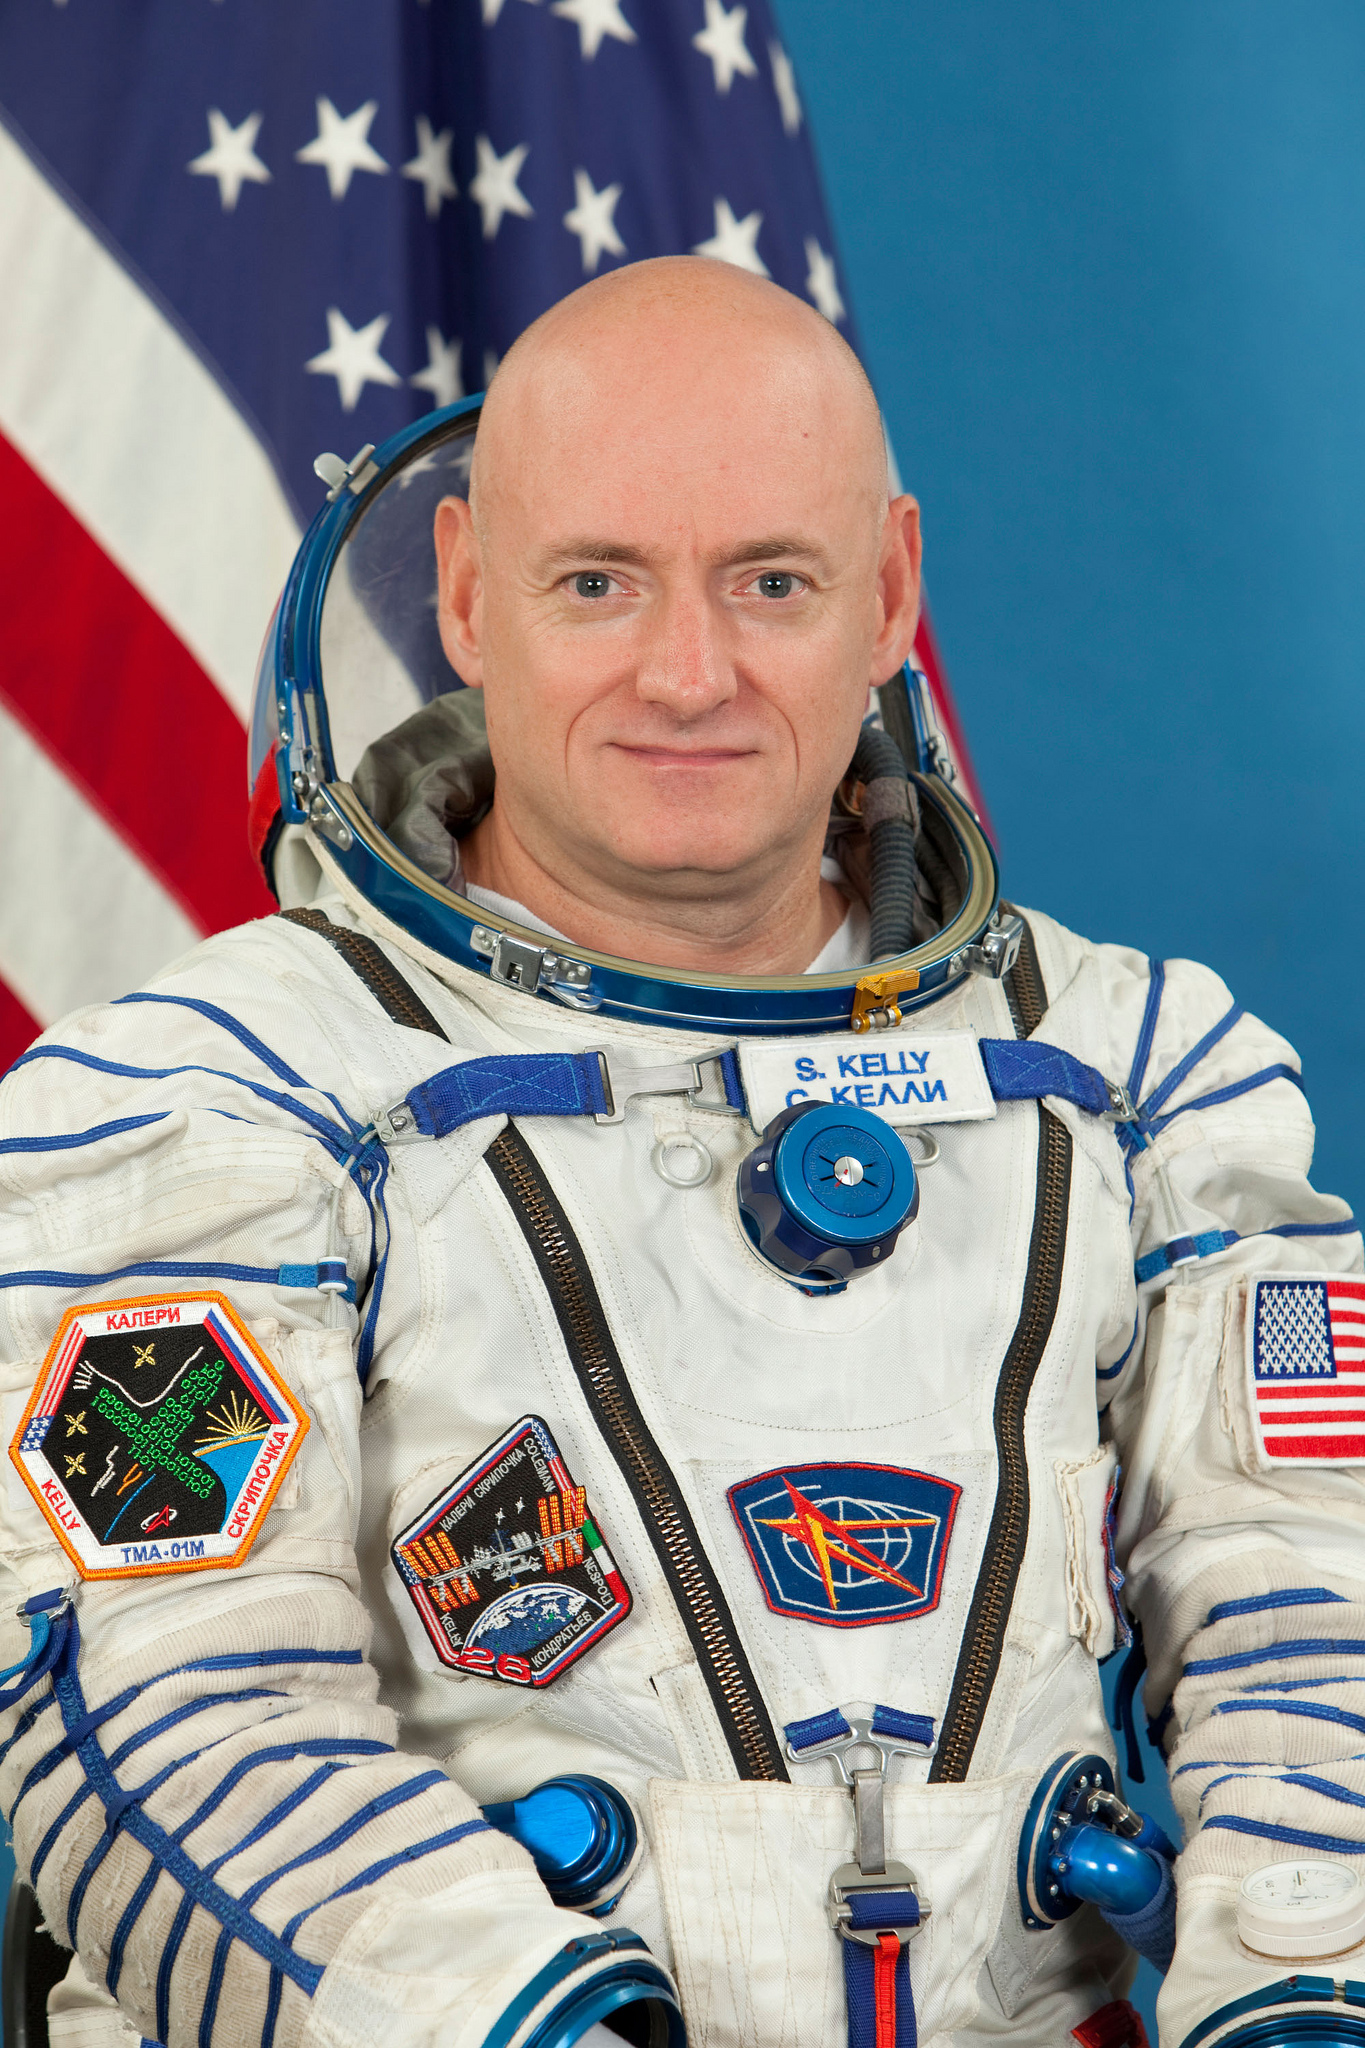 astronaut in space for 340 days - photo #27